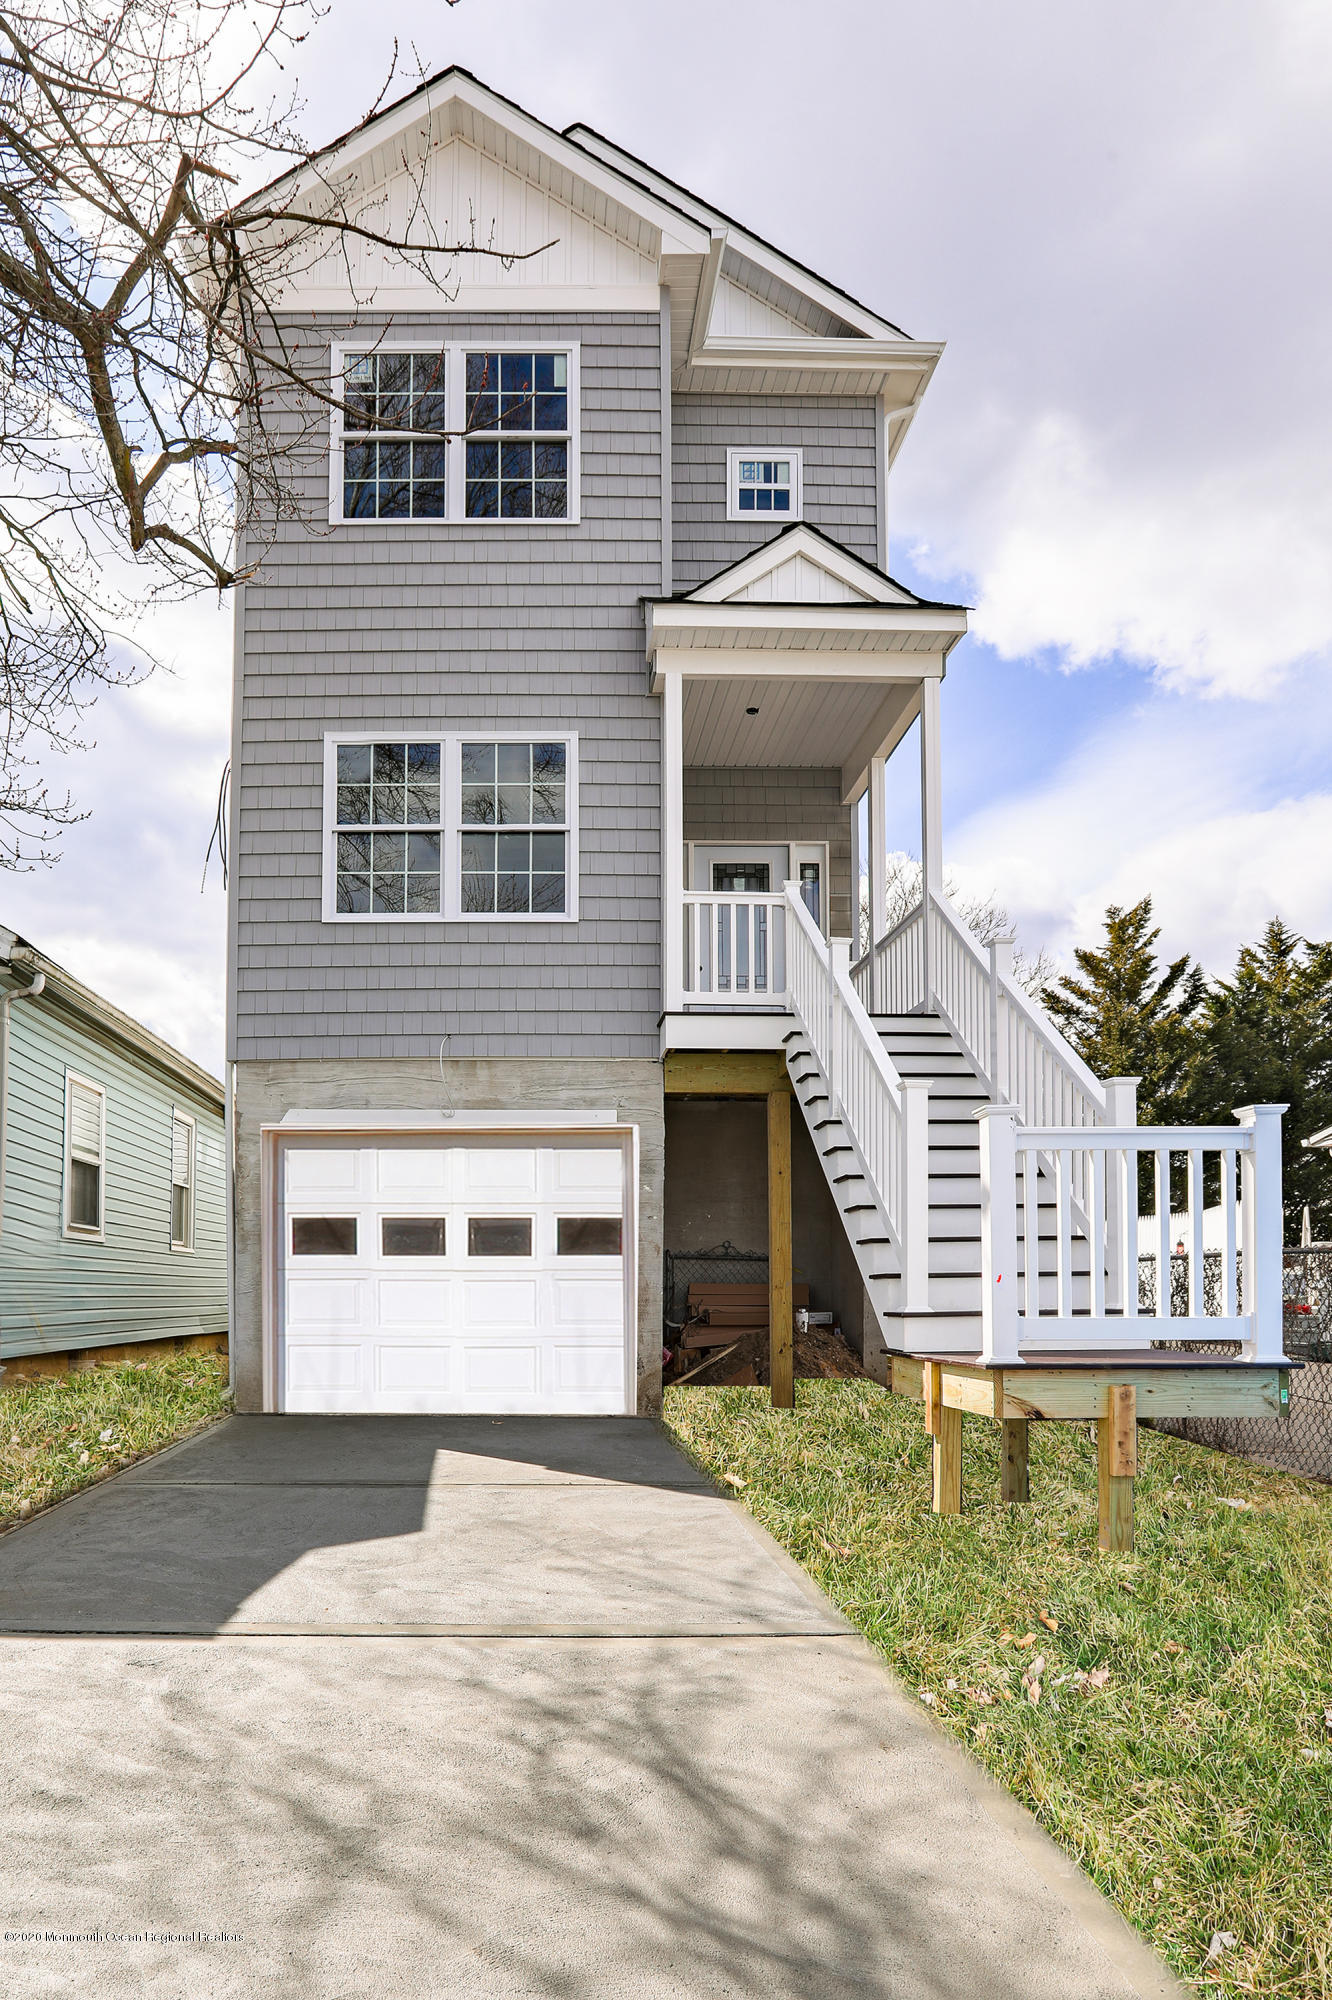 912 2nd Street, Union Beach, New Jersey 07735, 3 Bedrooms Bedrooms, ,3 BathroomsBathrooms,Single Family,For Sale,912 2nd Street,2,22024765